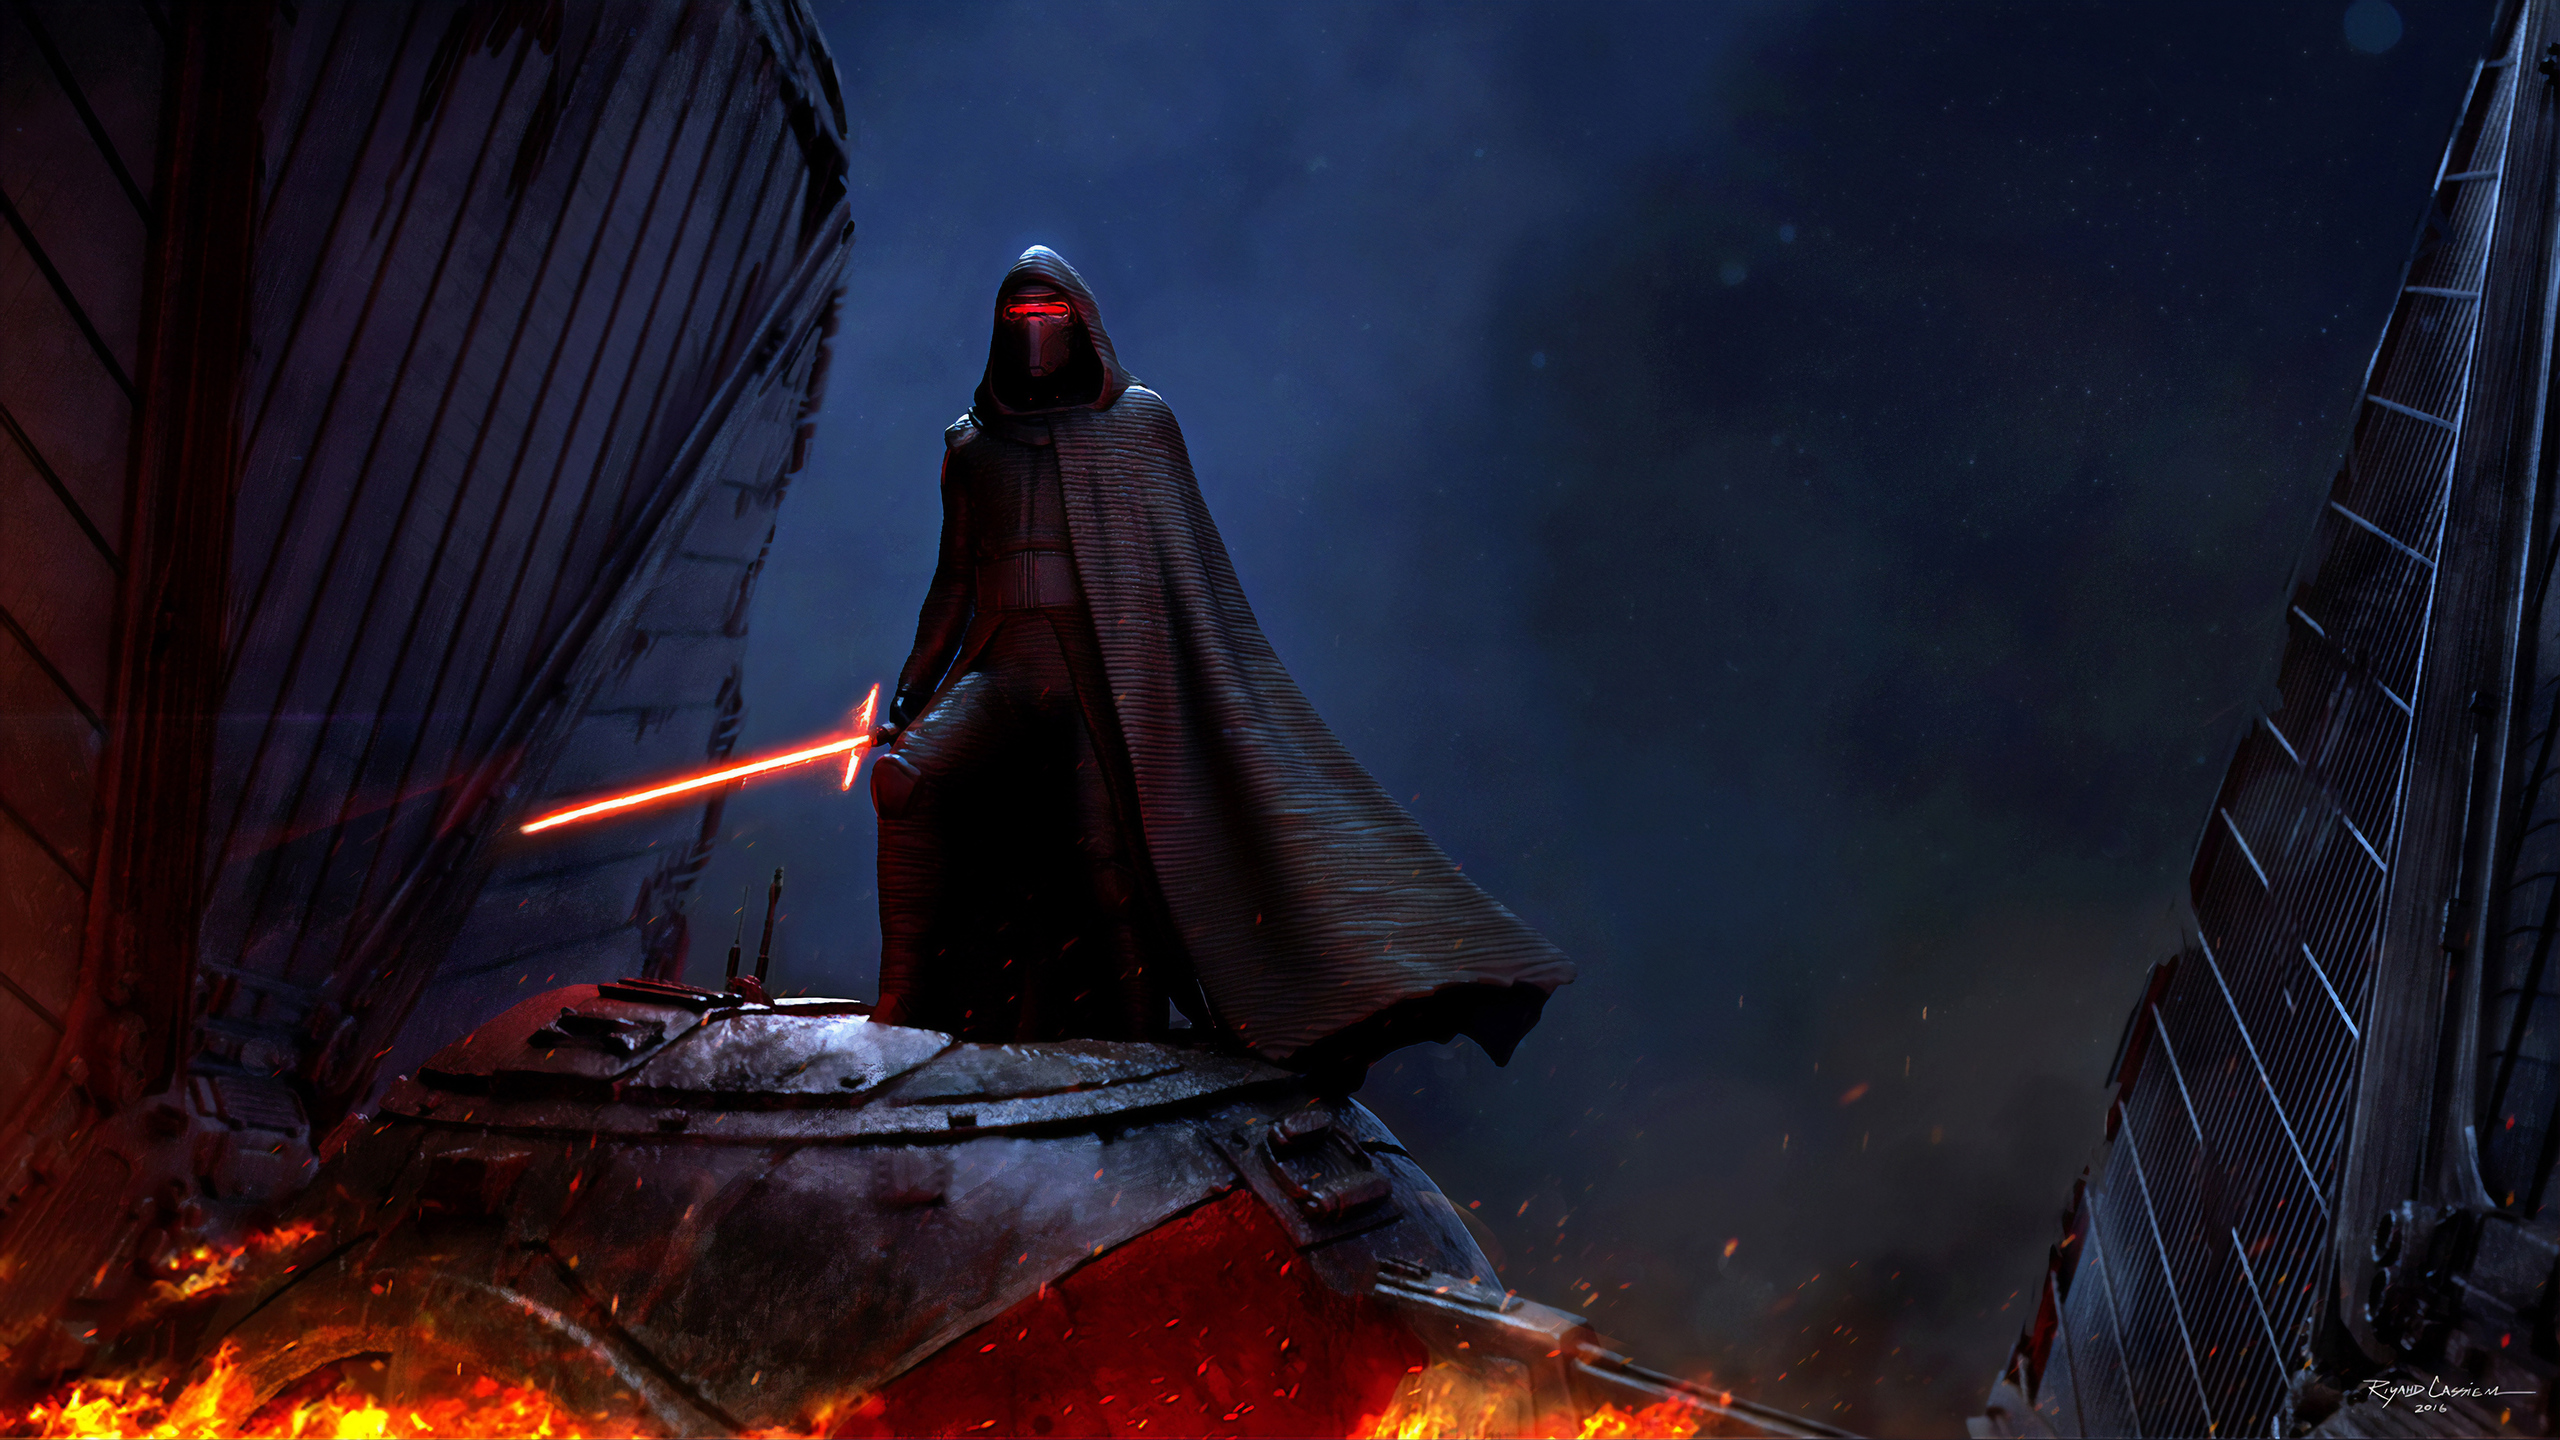 2560x1440 Kylo Ren Star Wars 4k 1440p Resolution Hd 4k Wallpapers Images Backgrounds Photos And Pictures